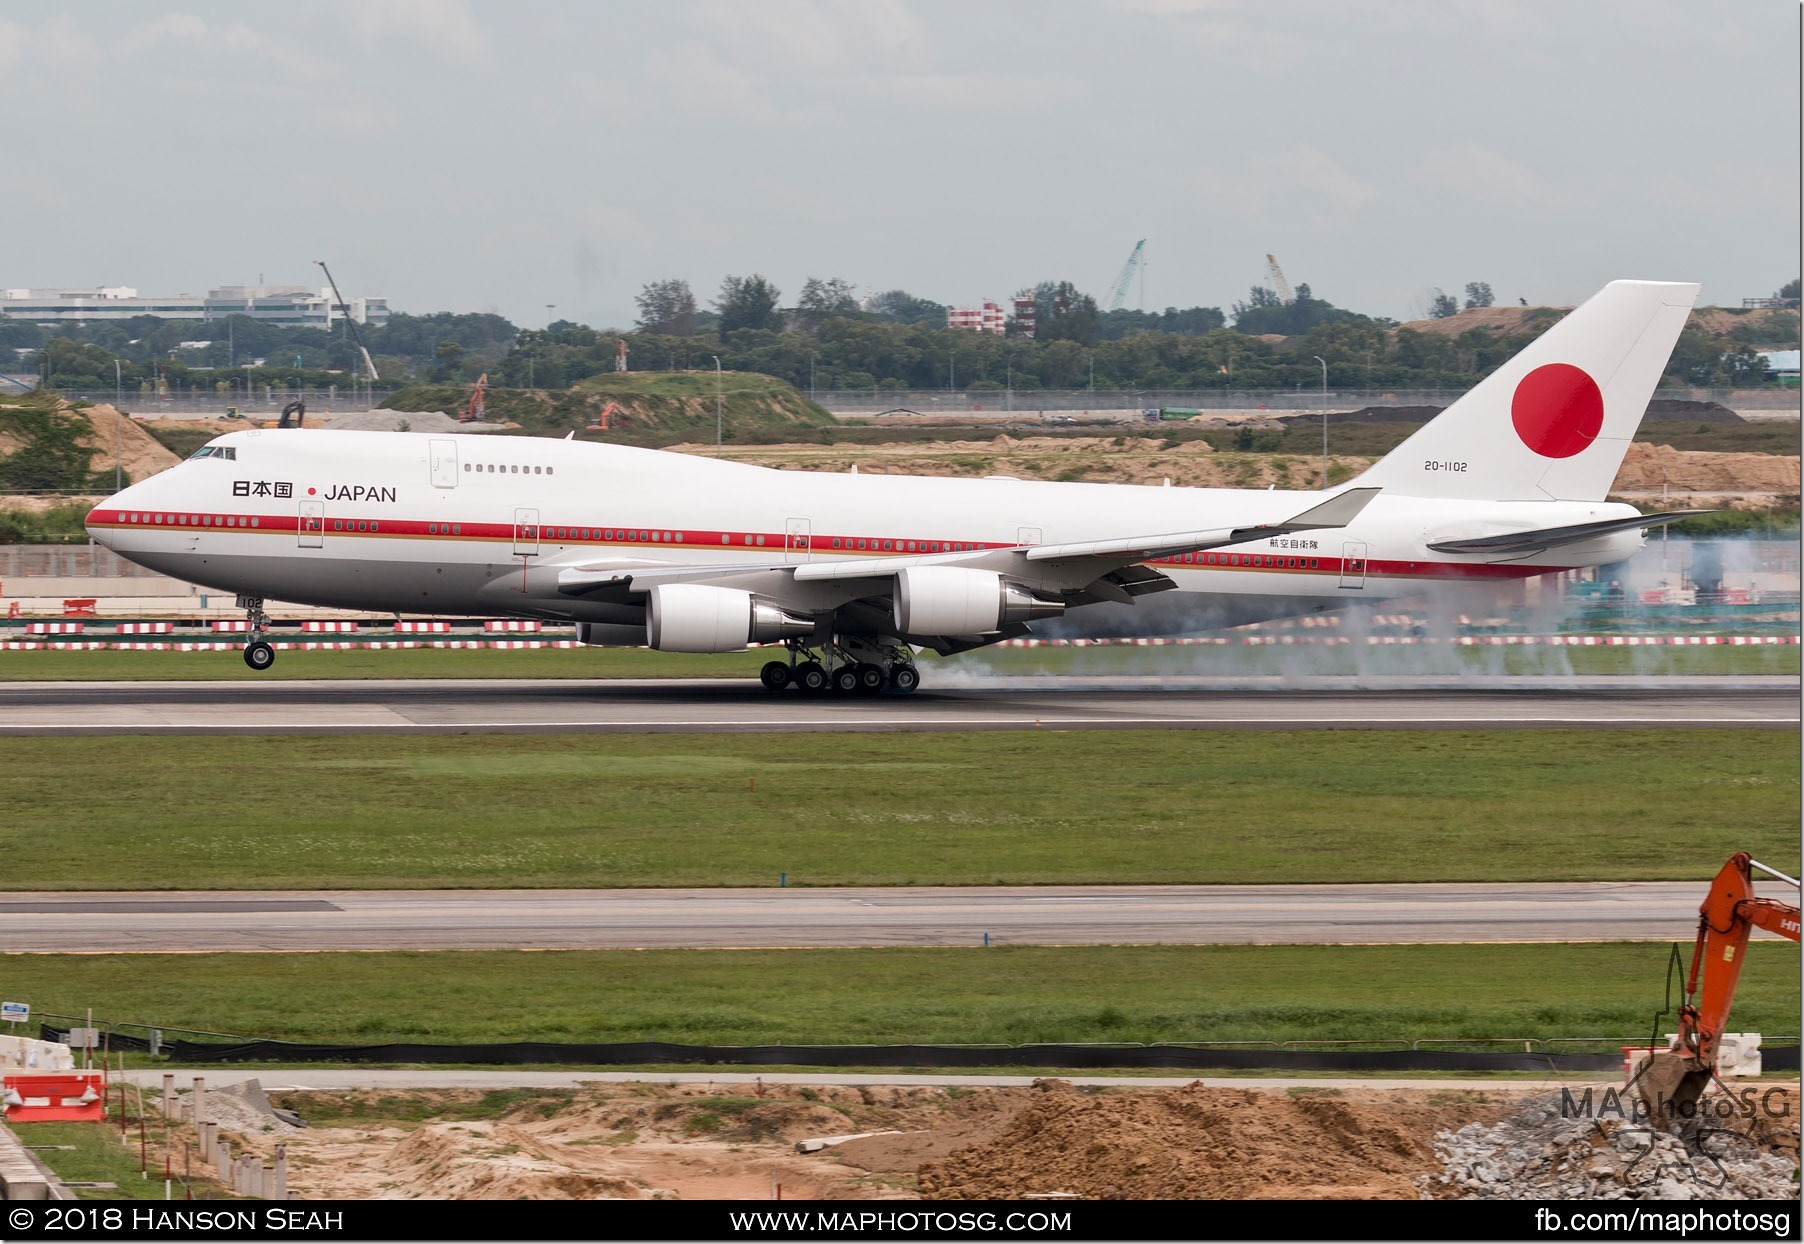 04. Japan Air Force Boeing 747